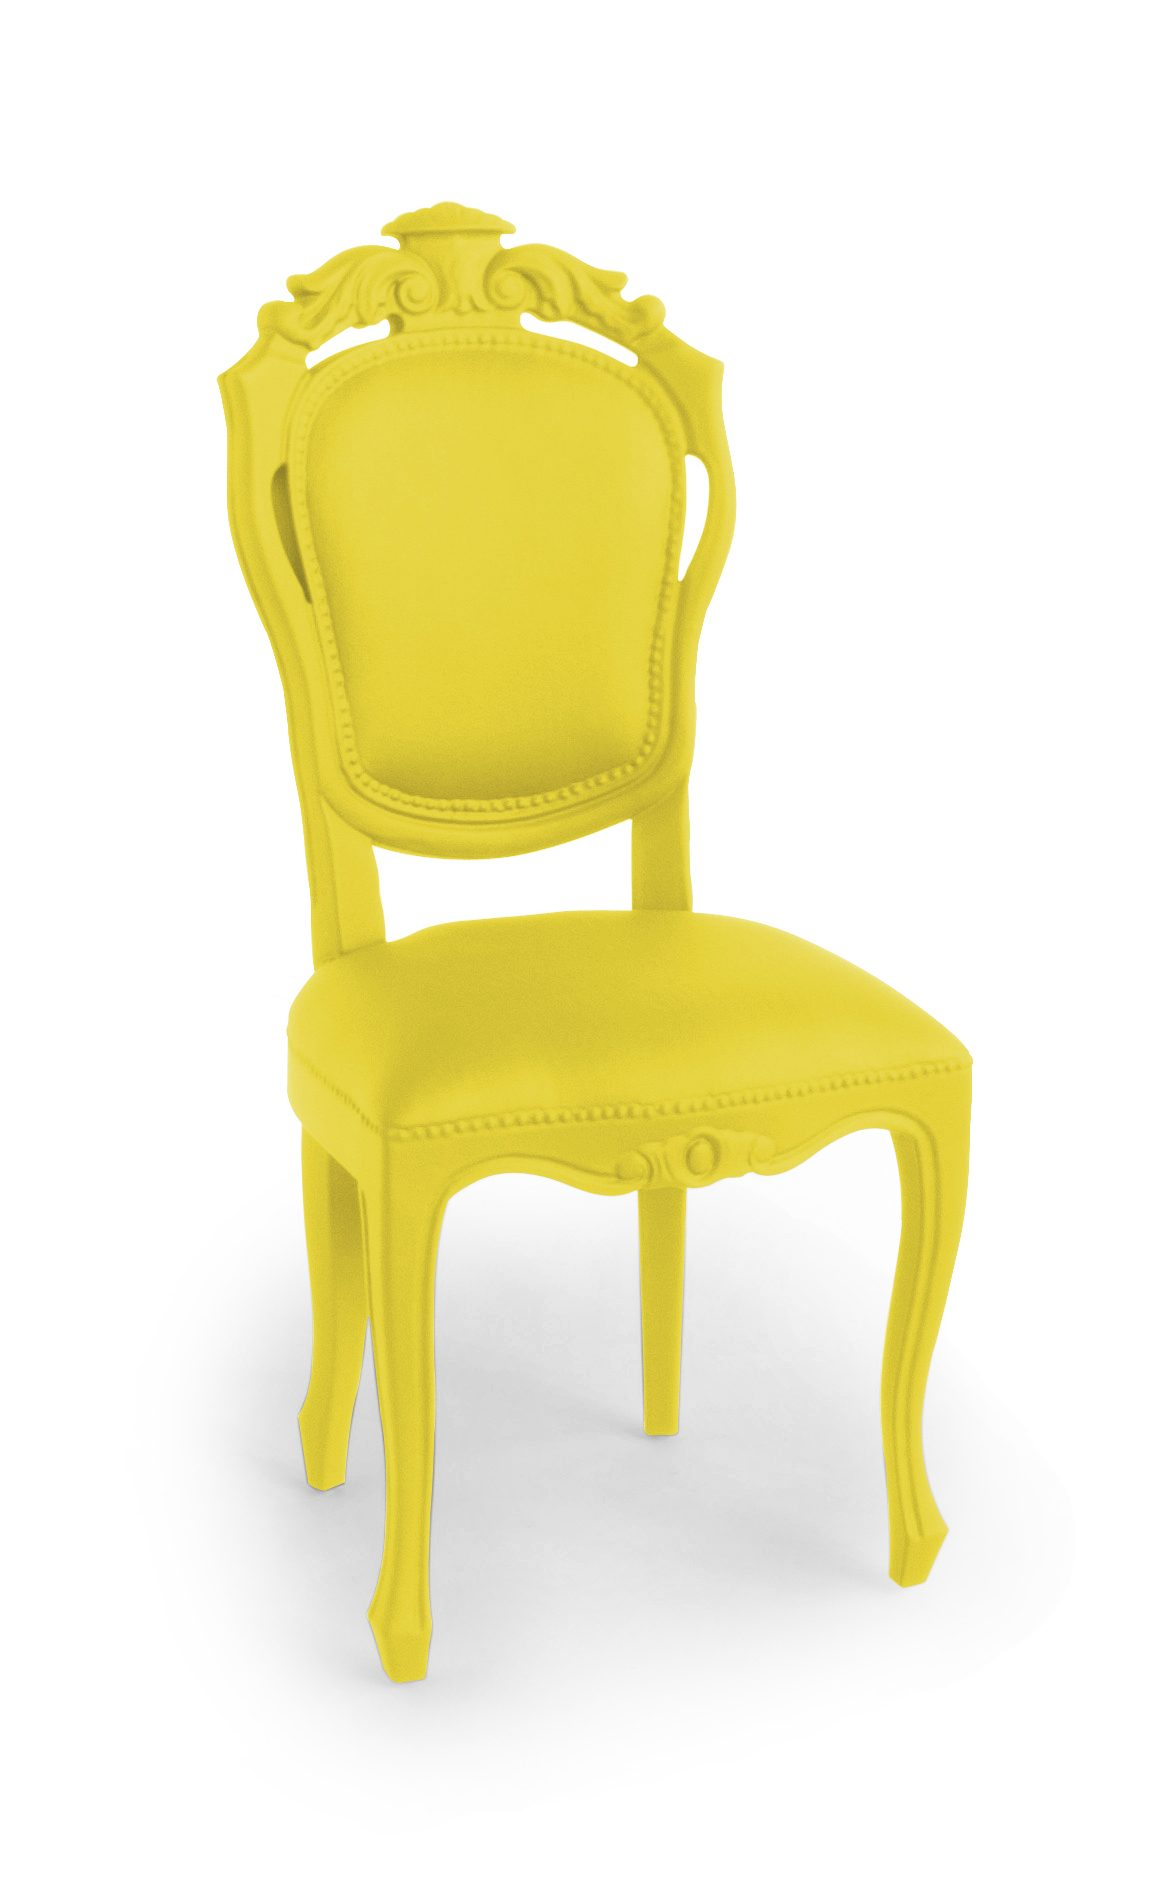 Plastic Fantastic Eettafelstoel Outdoor Indoor Dining Chair Banana Yellow Geel